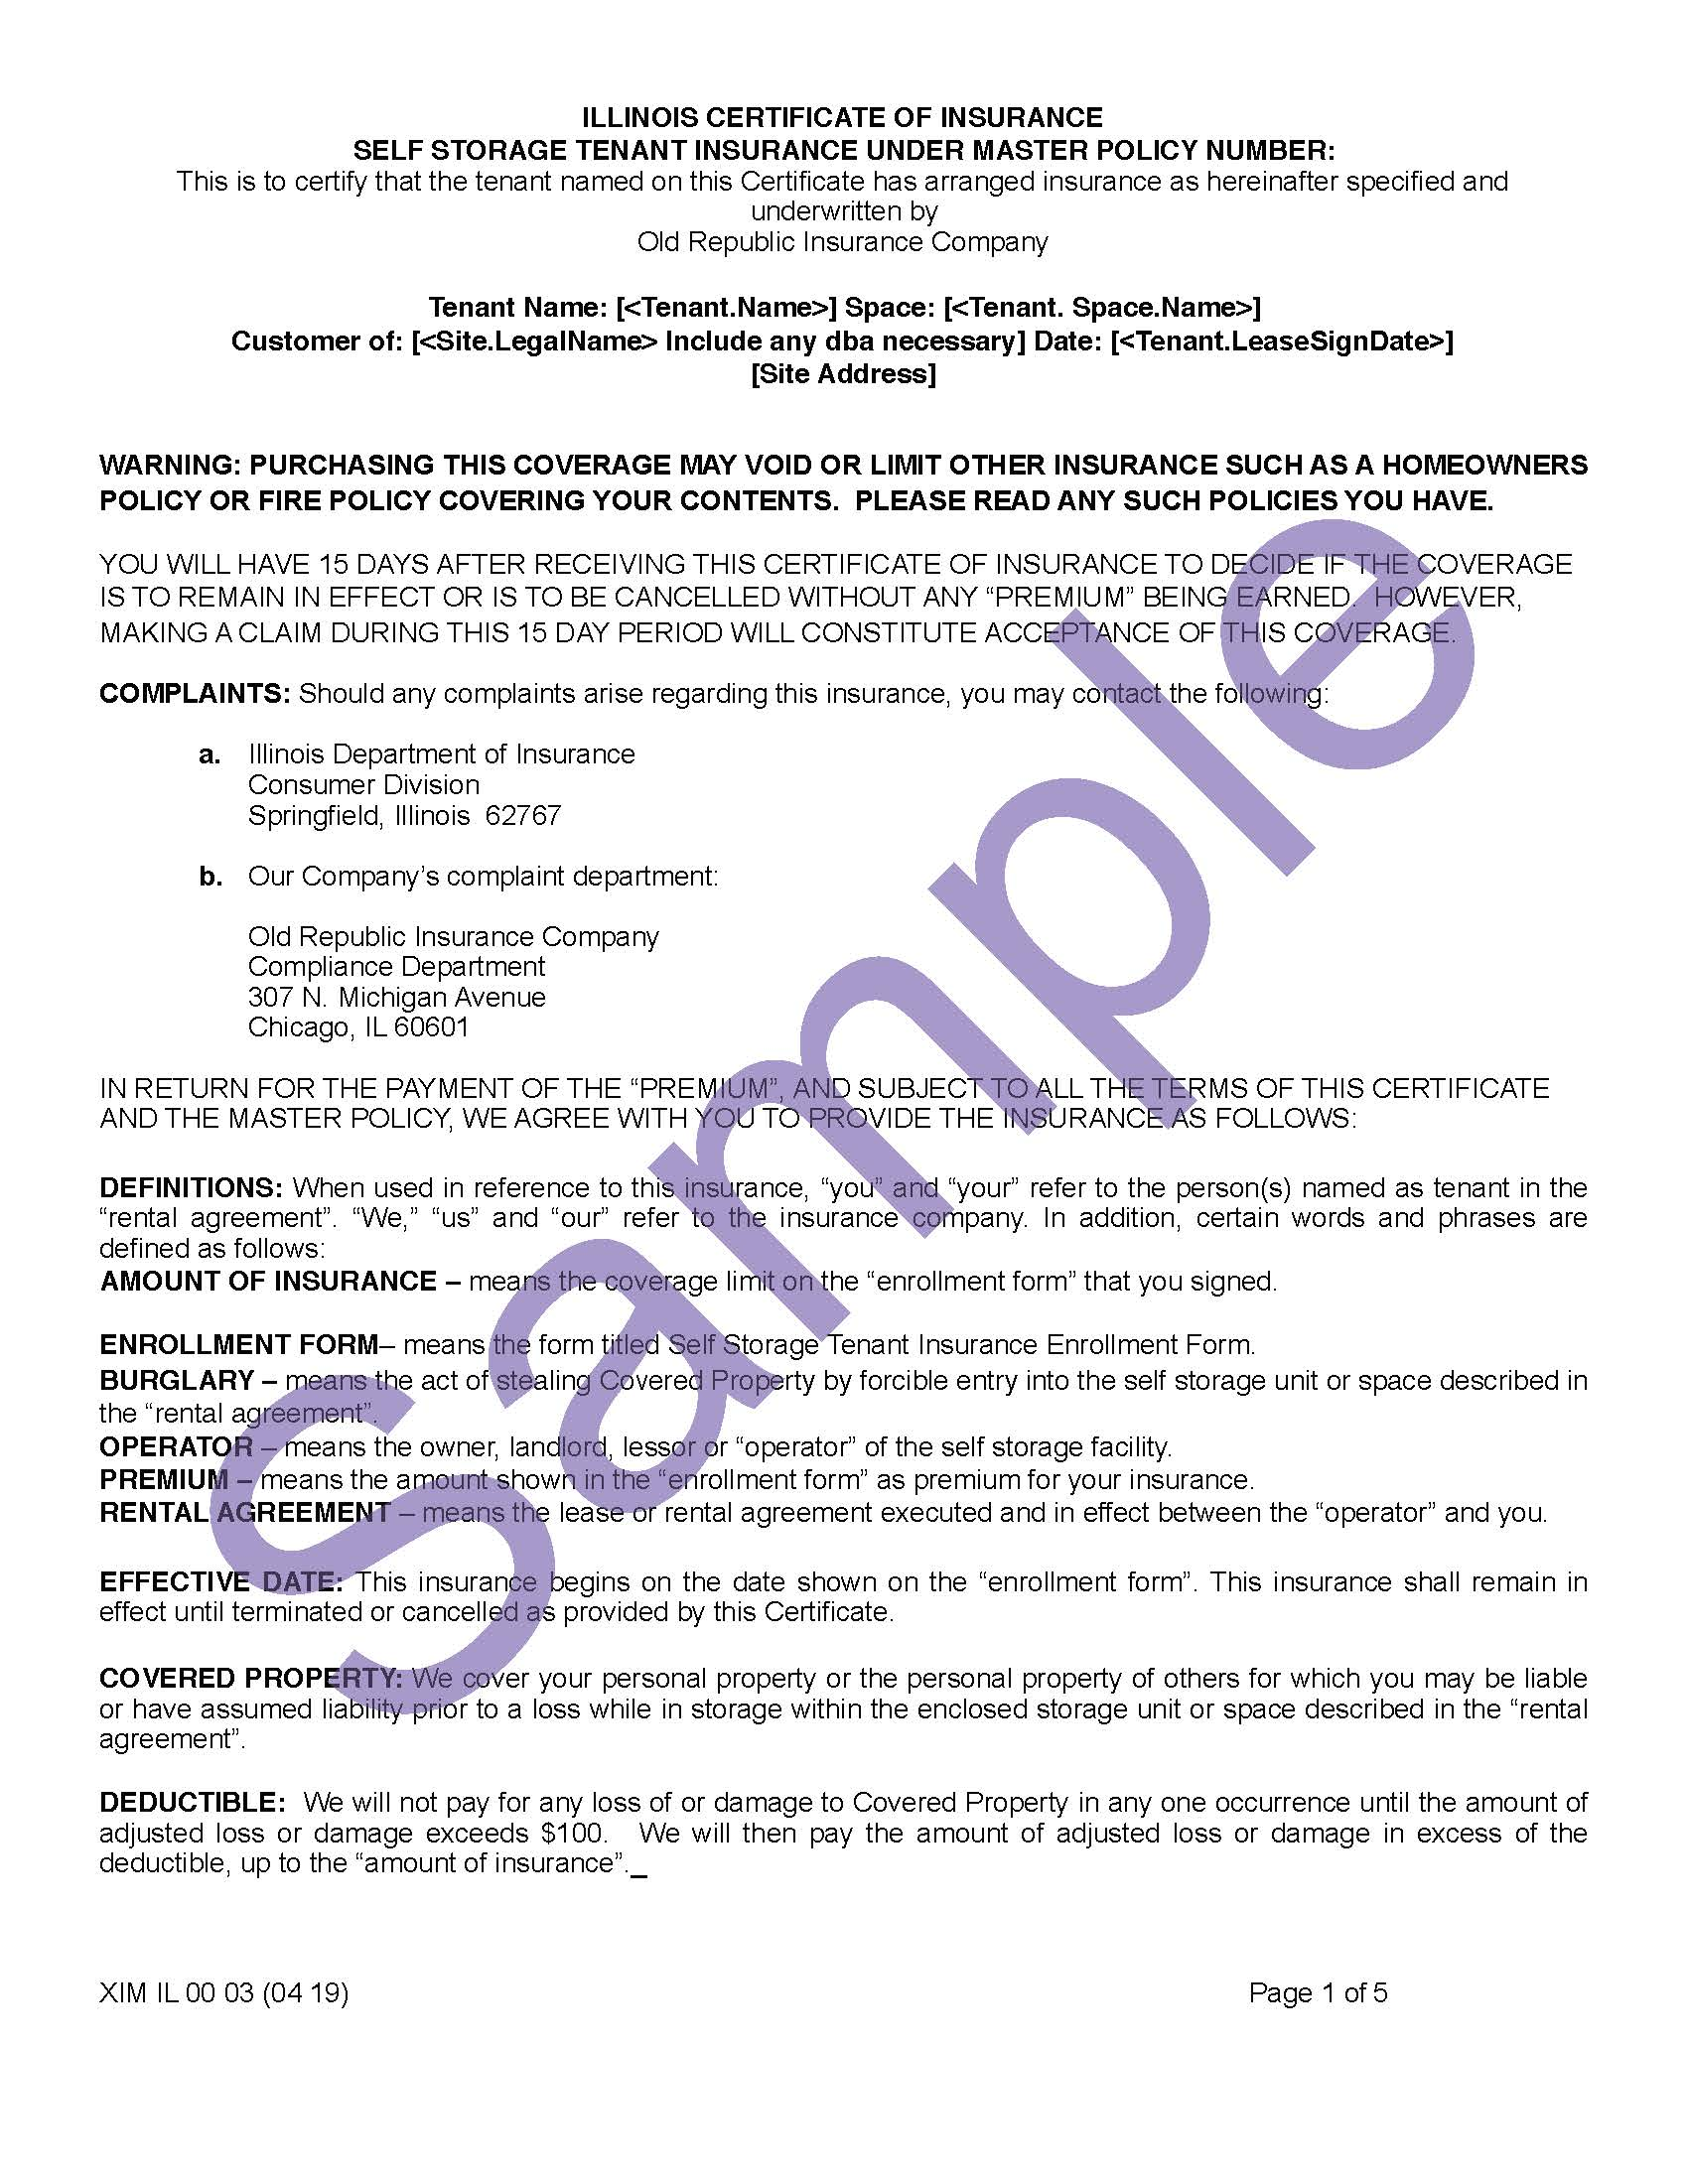 XIM IL 00 03 04 19 Illinois Certificate of InsuranceSample_Page_1.jpg